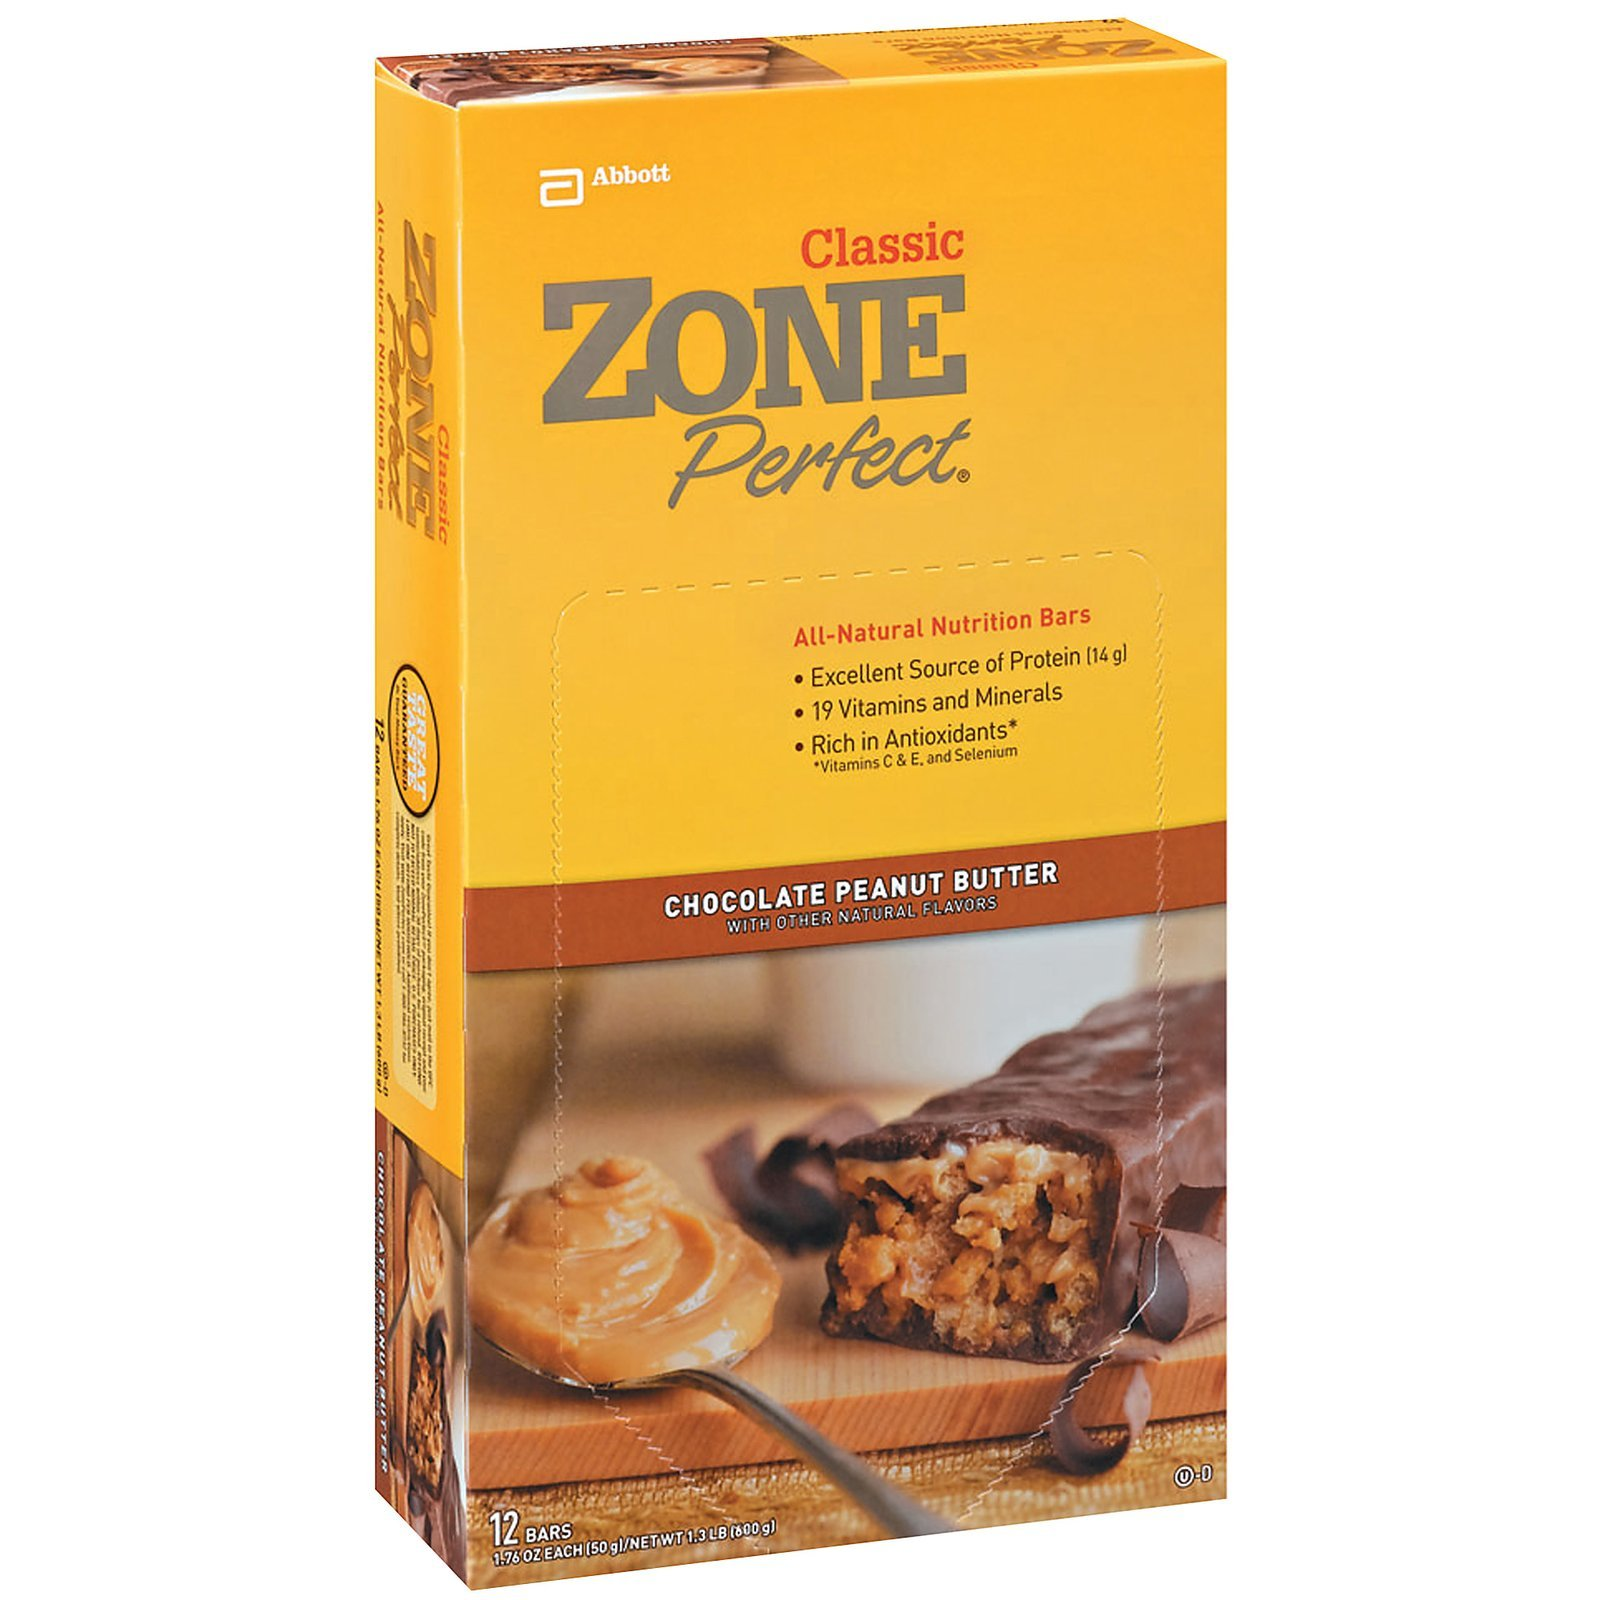 EAS Zone Perfect All Natural Nutrition Bar Chocolate Peanut Butter - 12 - 1.76 oz (50 g) bar [1.32 lb (600 g)] - 5 Pack